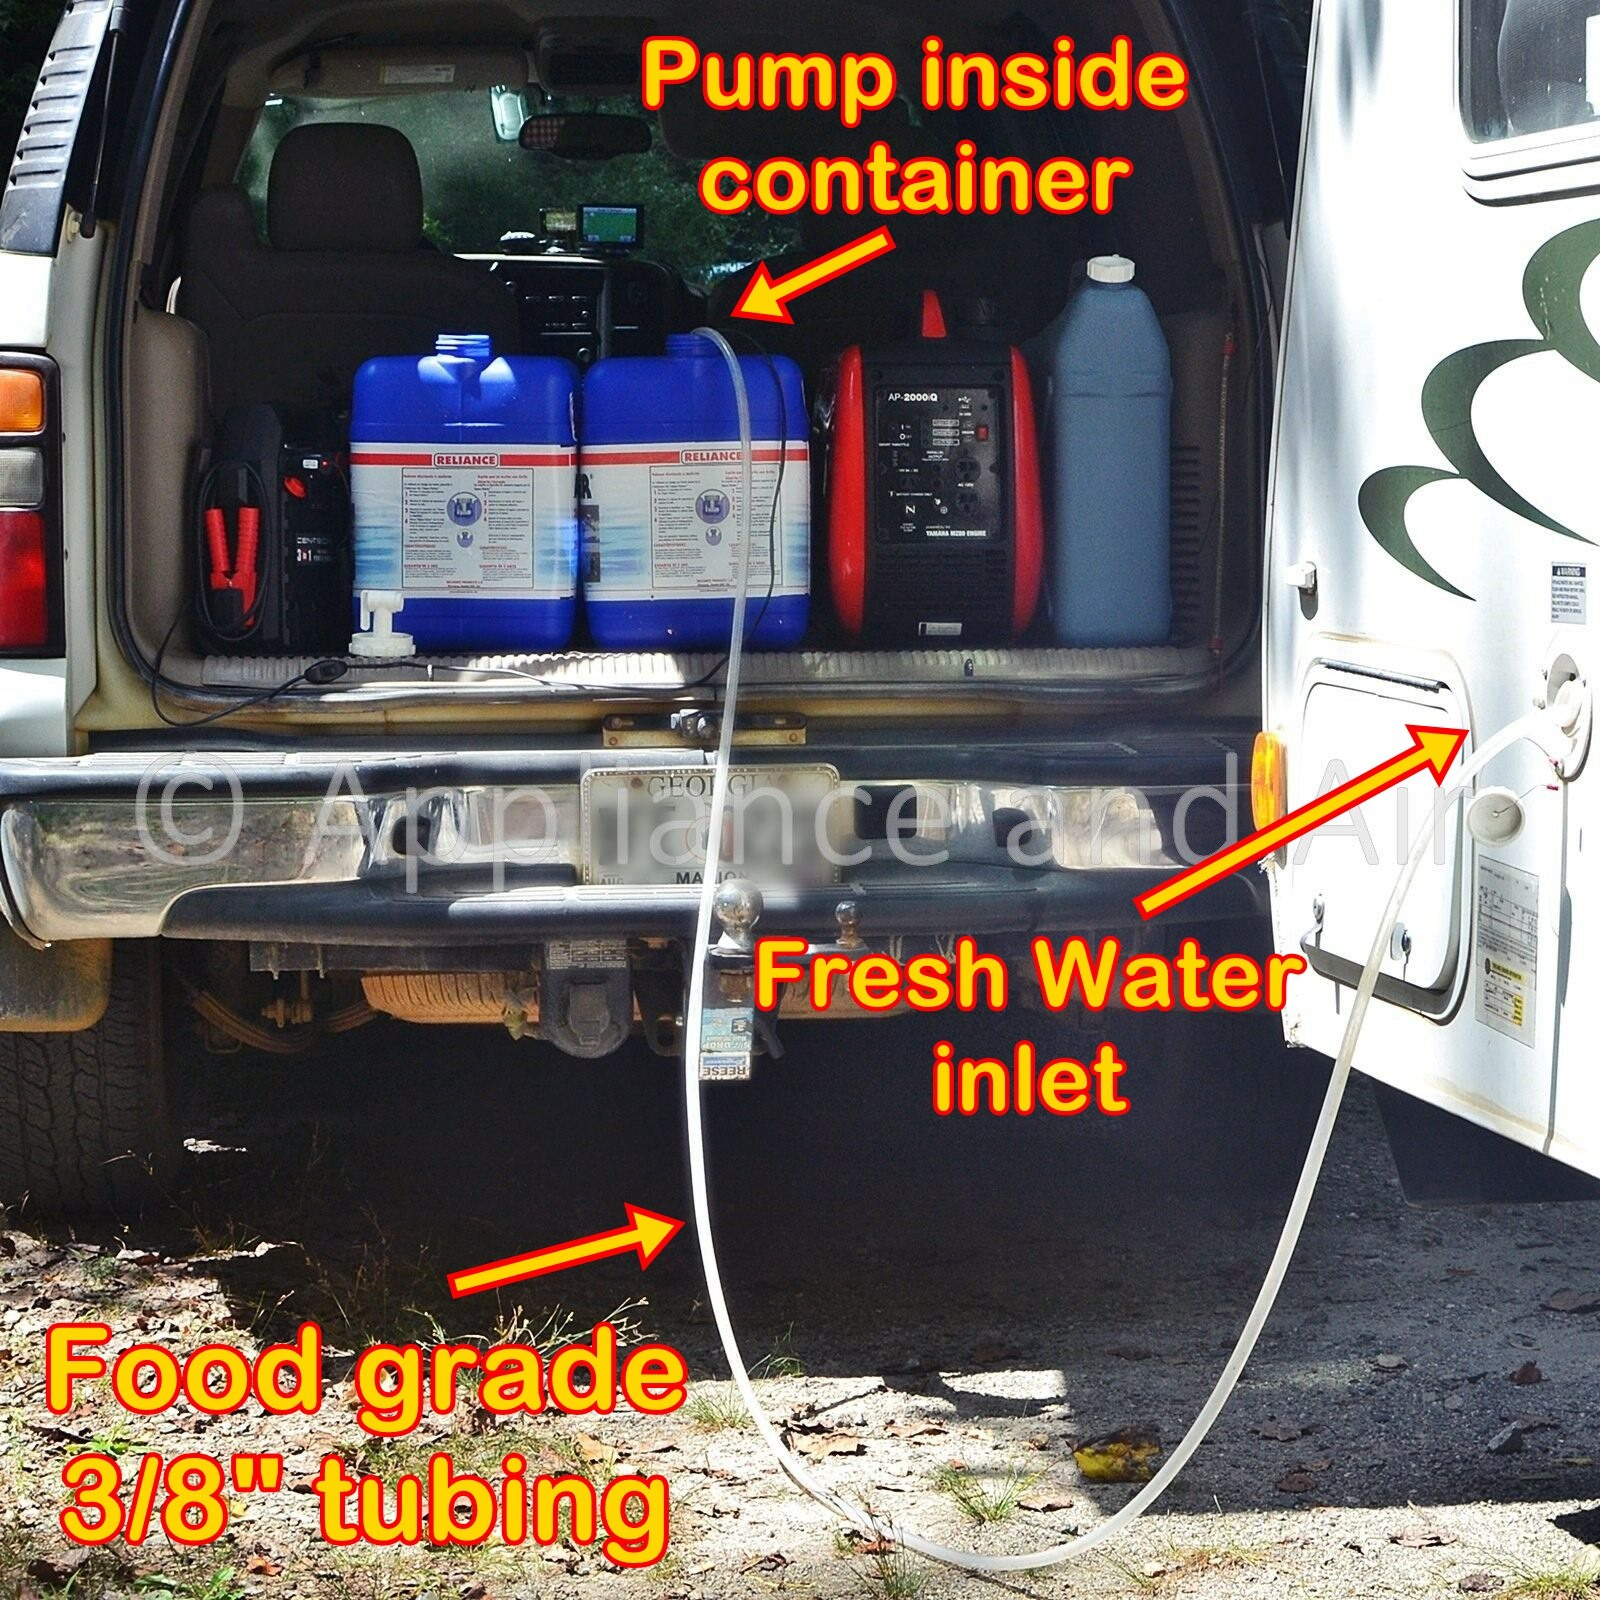 Stainless Steel RV Camper Submersible Pump, get fresh water from mountain Creek!